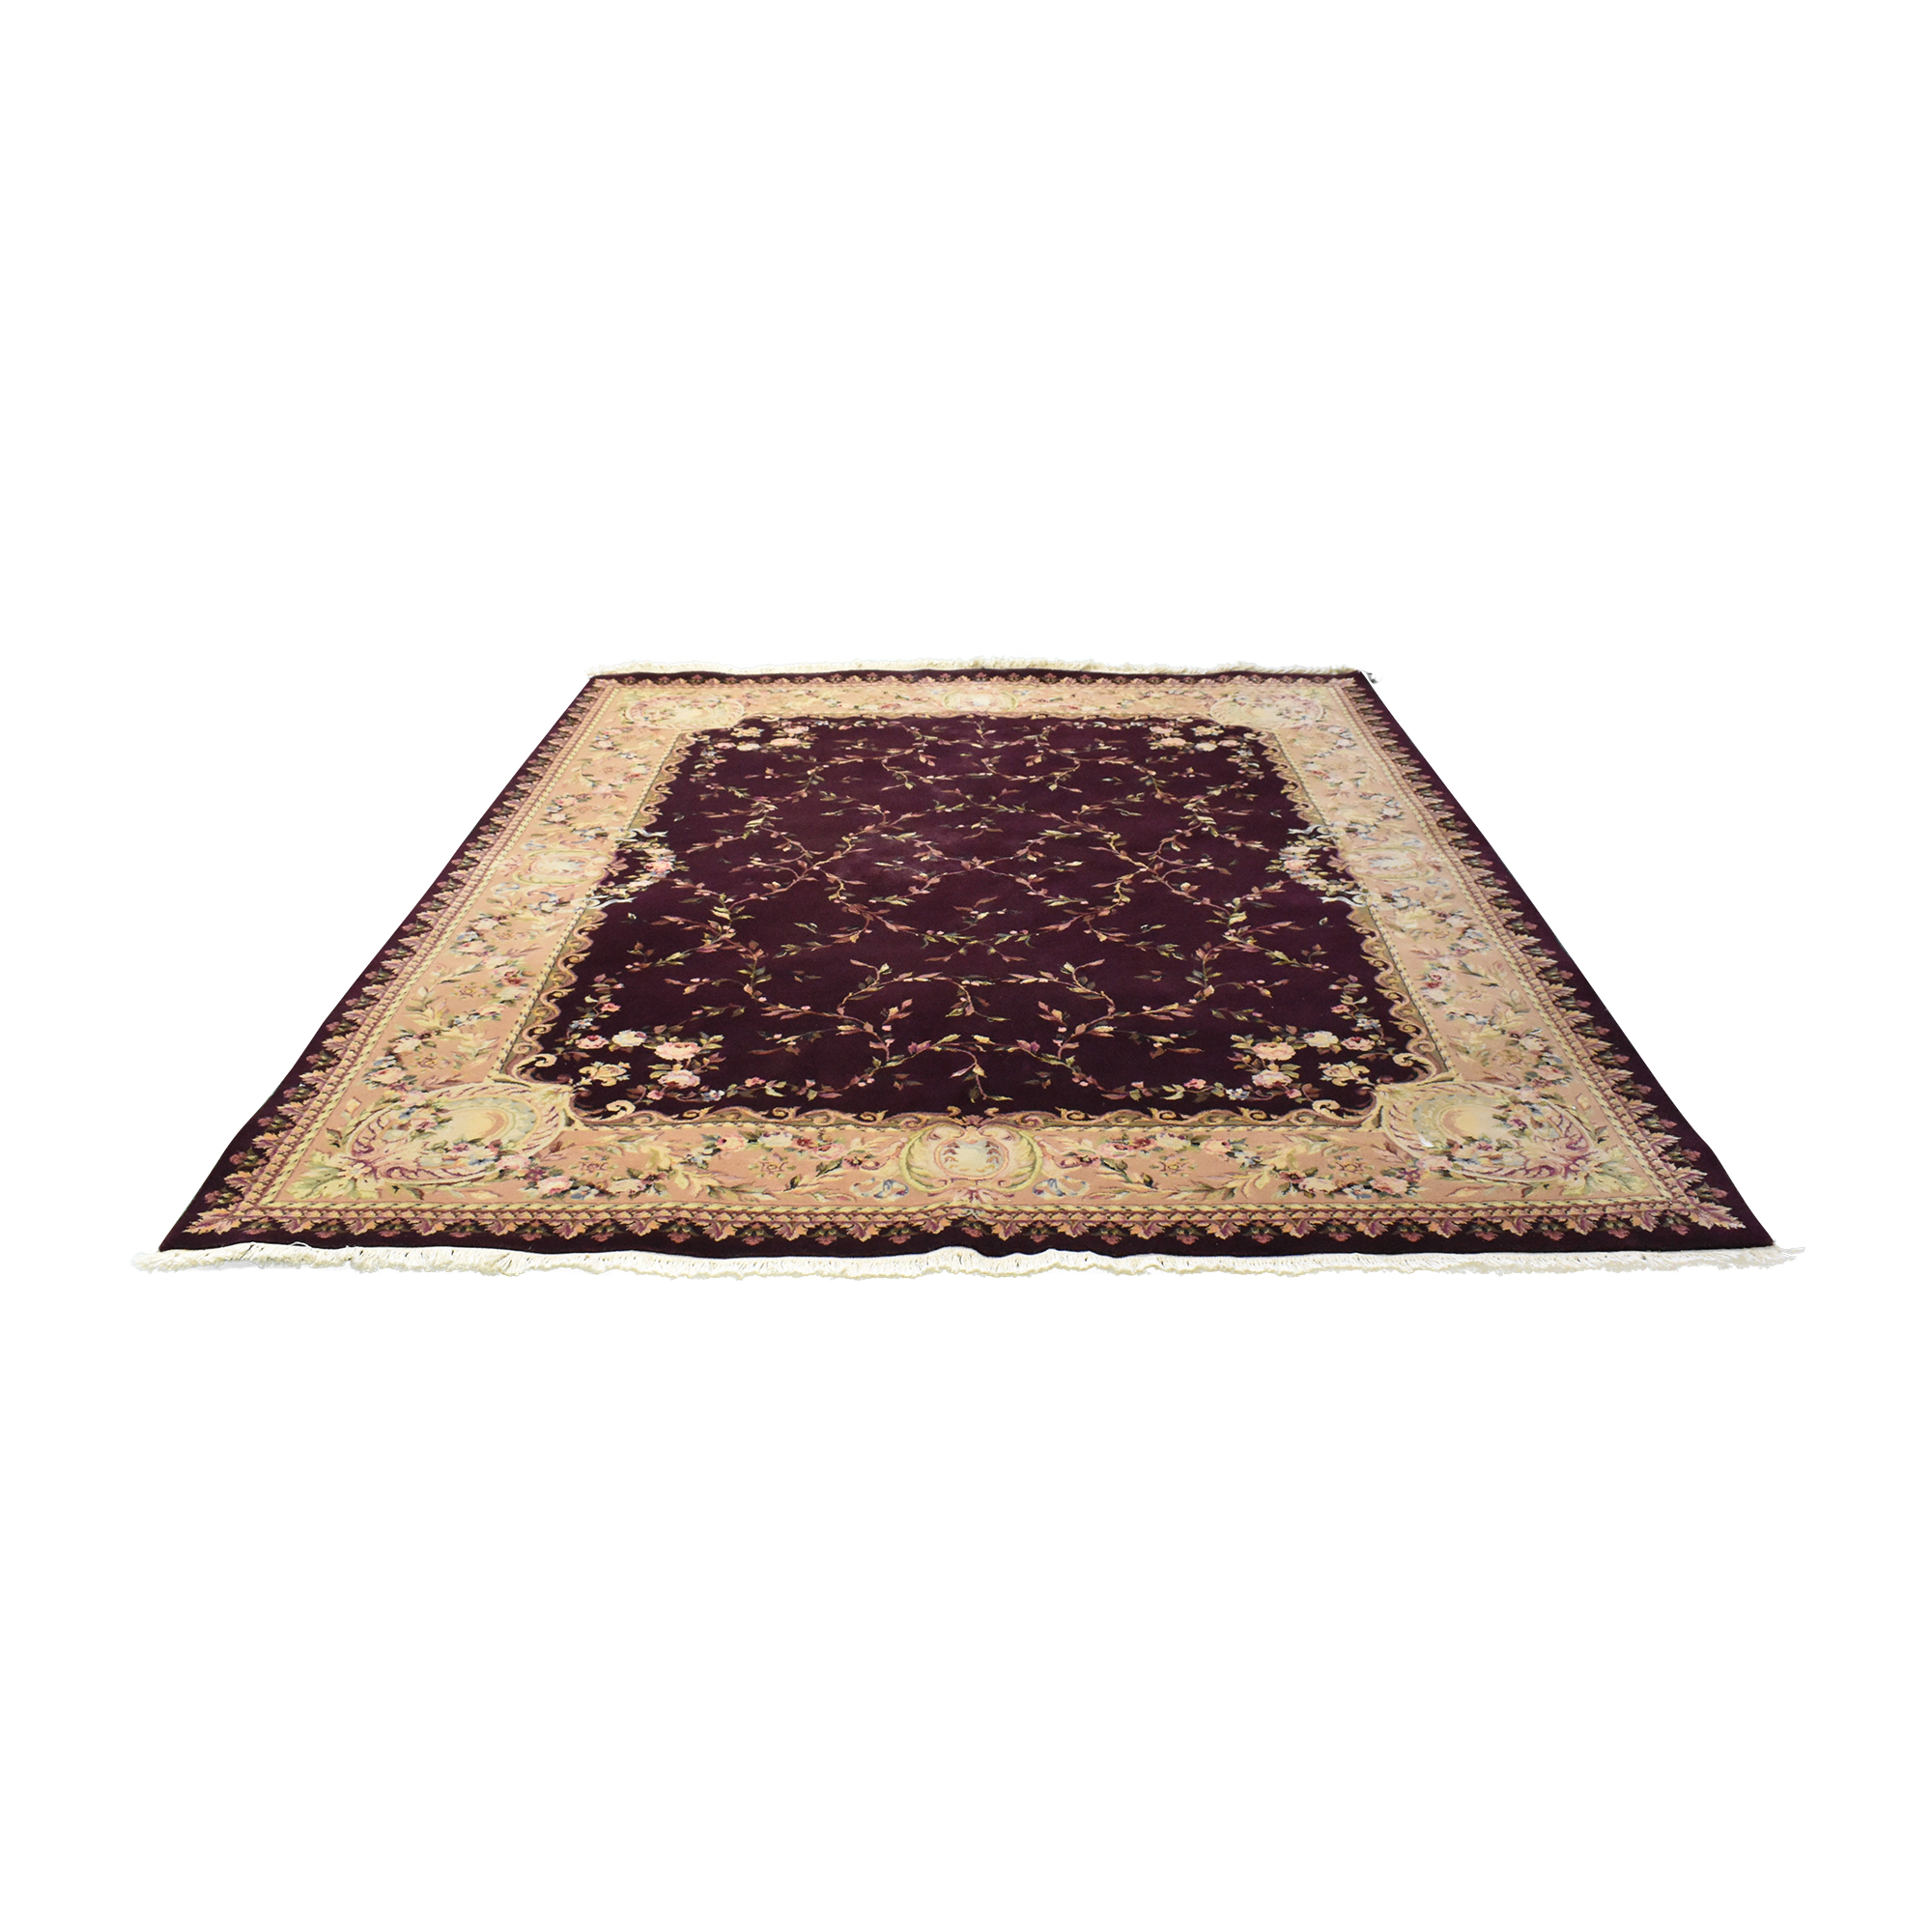 Floral Patterned Area Rug